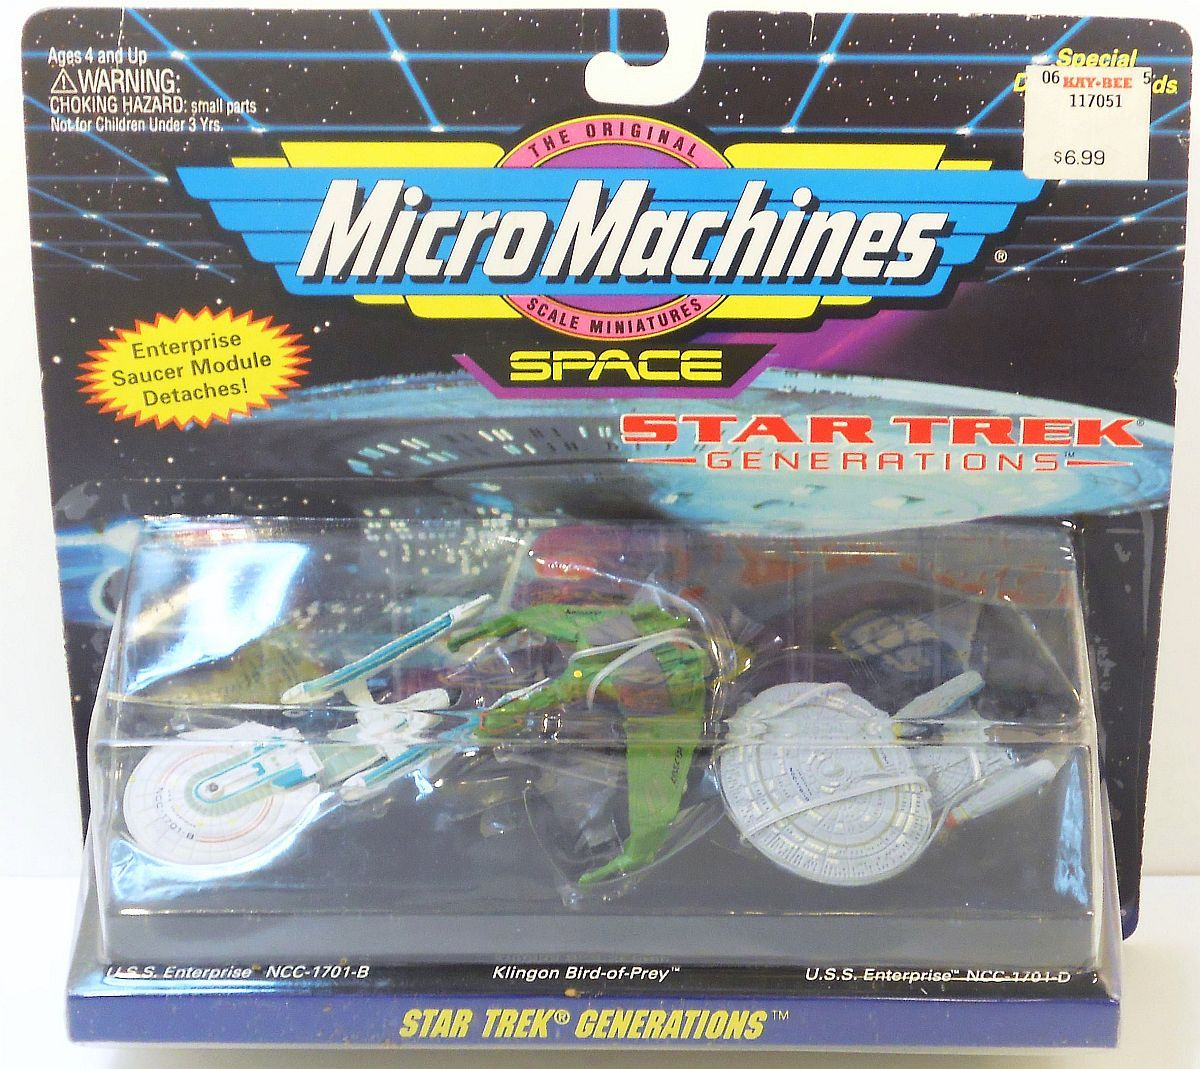 St_generations_micromachines_1